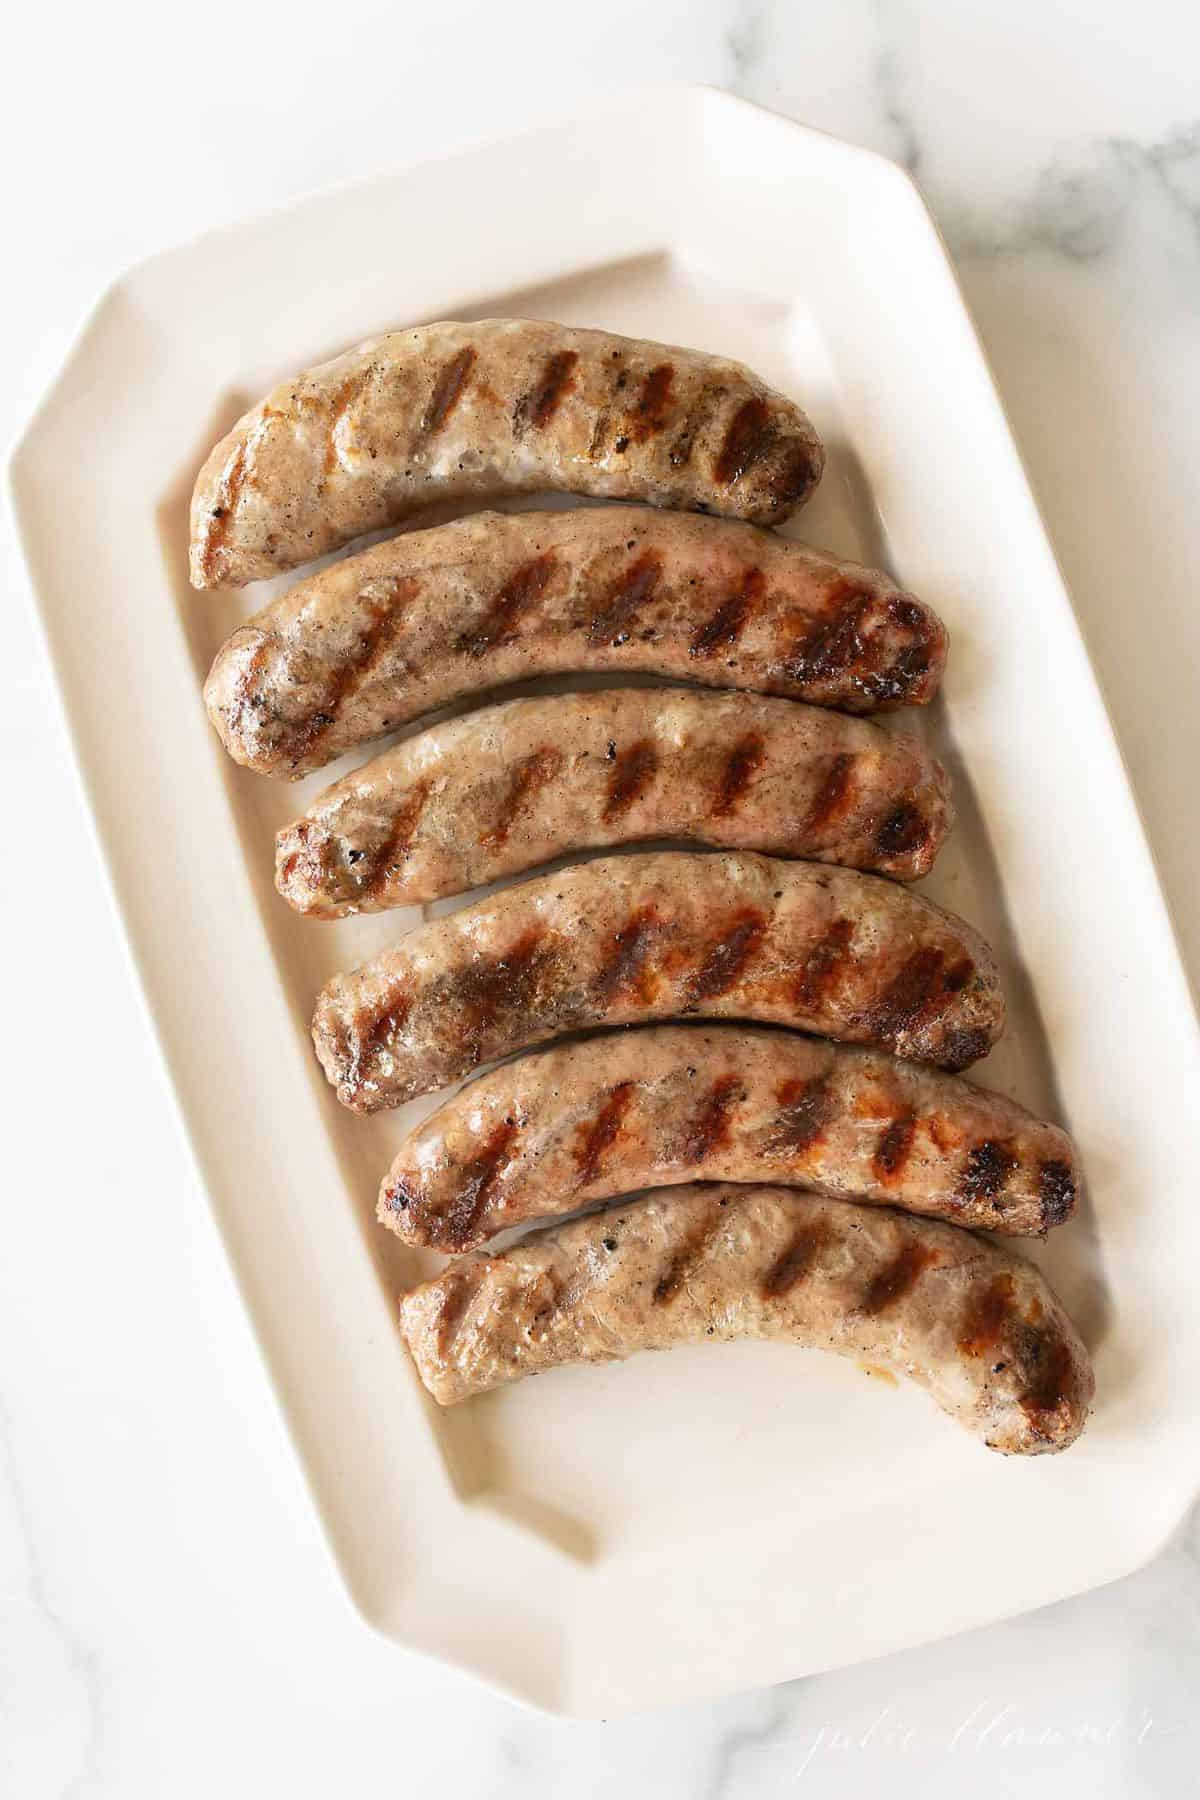 A white rectangular tray filled with cooke bratwurst sausages.